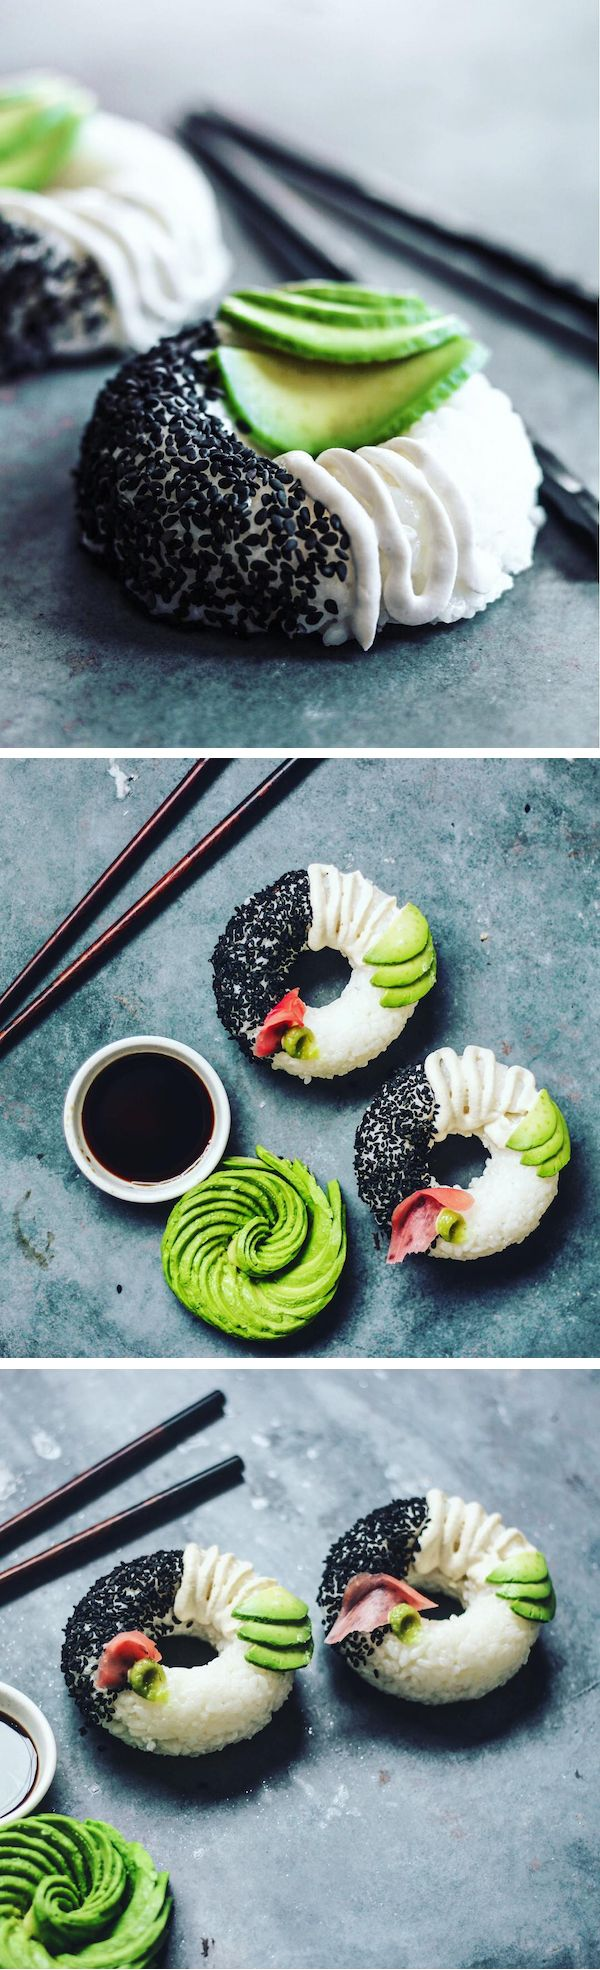 Make Sushi Donuts for your next sushi party. They're tasty and easy to make. #Ad